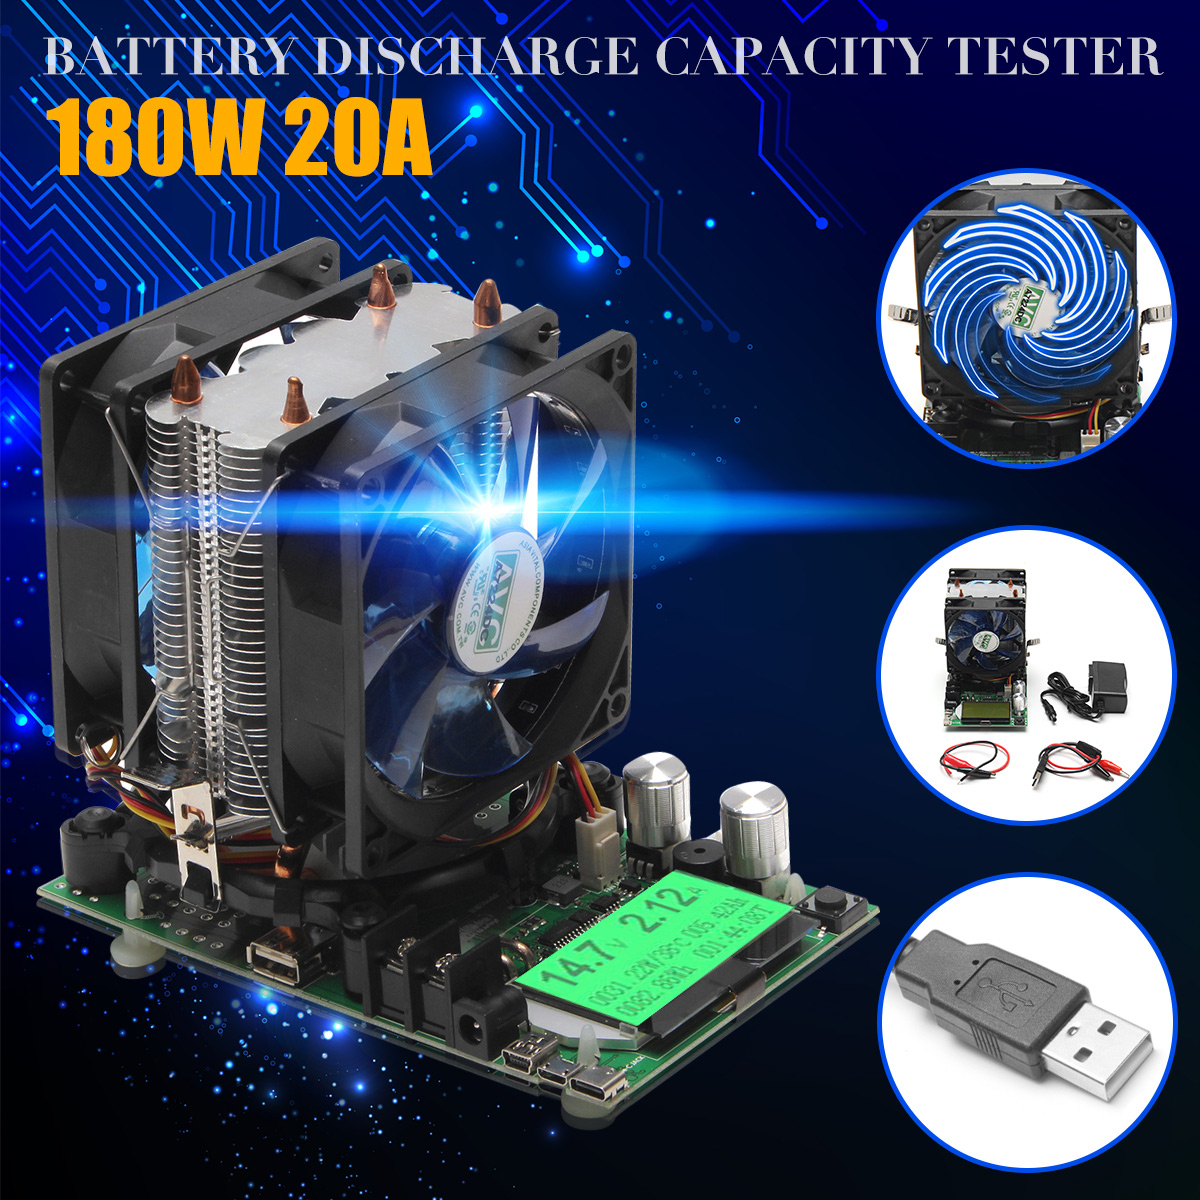 200V 20A 180W Constant Current Electronic Load Battery Discharge Capacity Tester